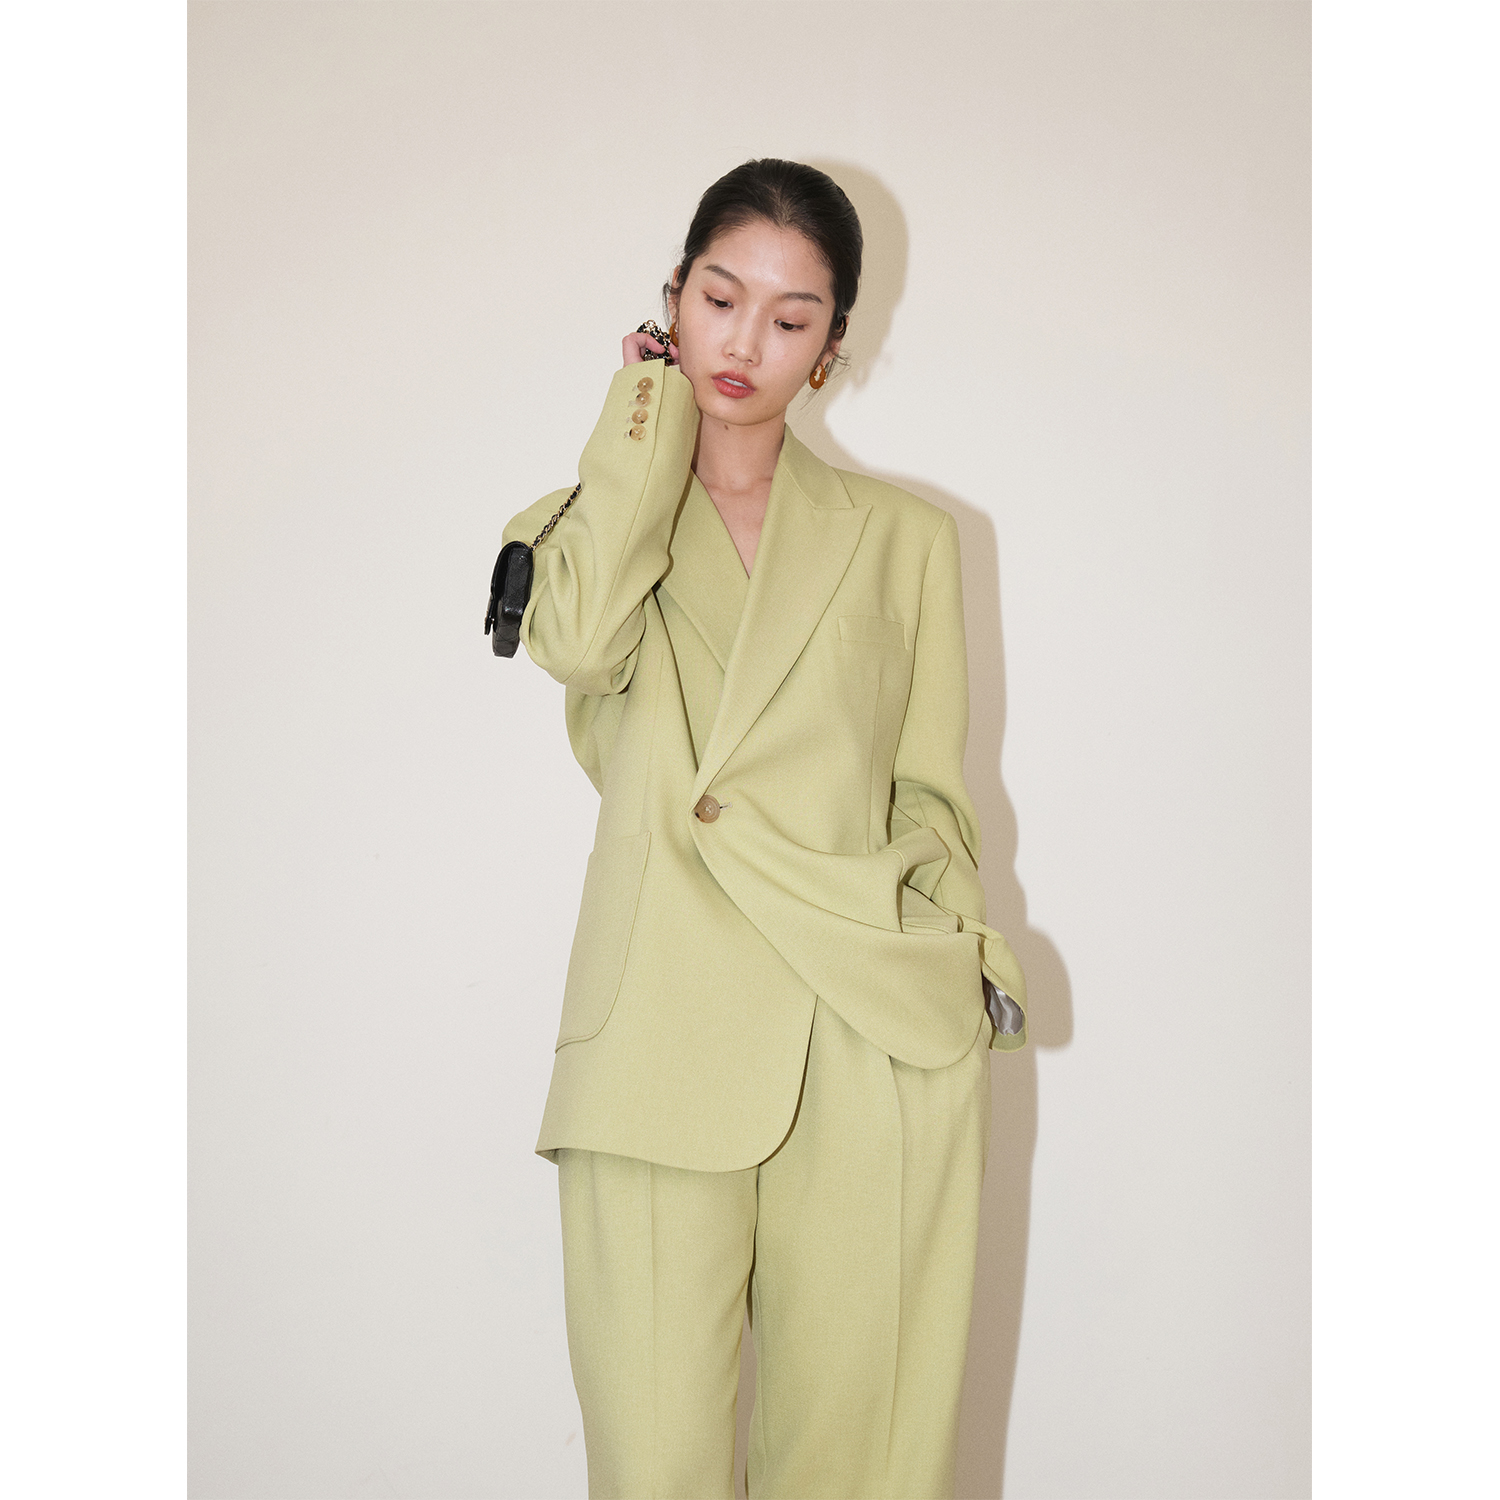 MRS Studios Early Spring new classic fashionable thin H-type one-button blazer Avocado green